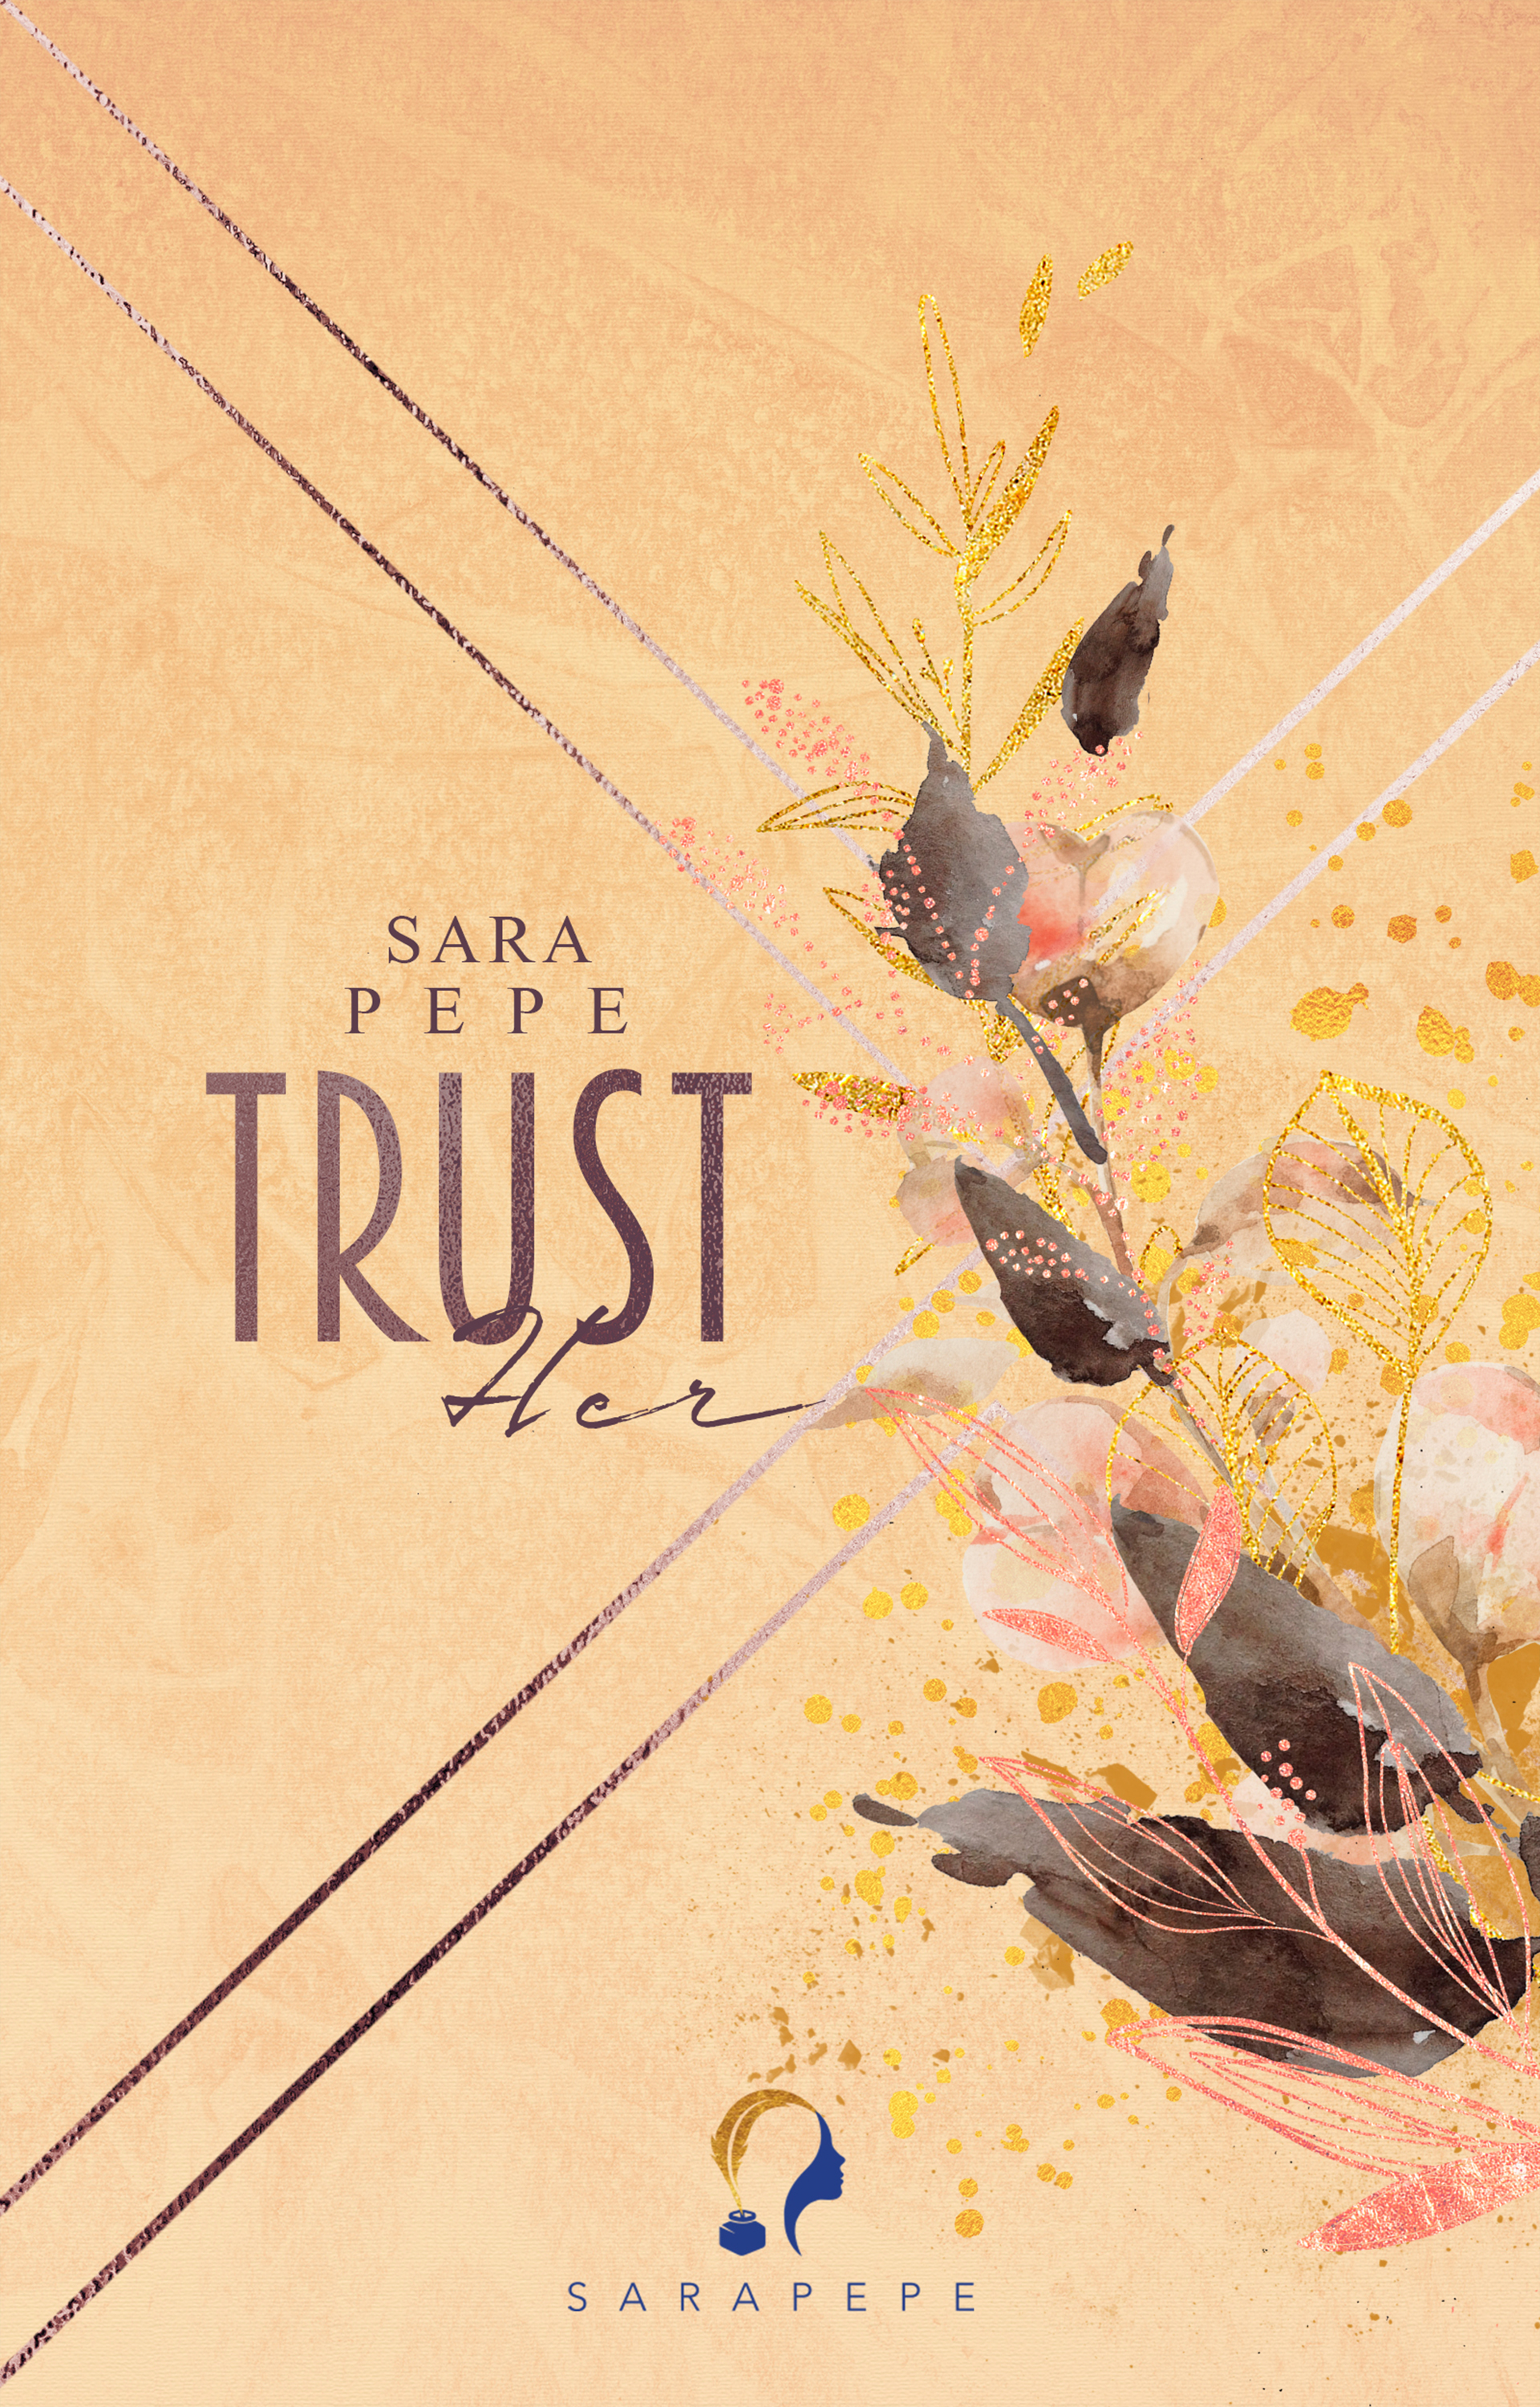 Trust - Her, eBook Cover